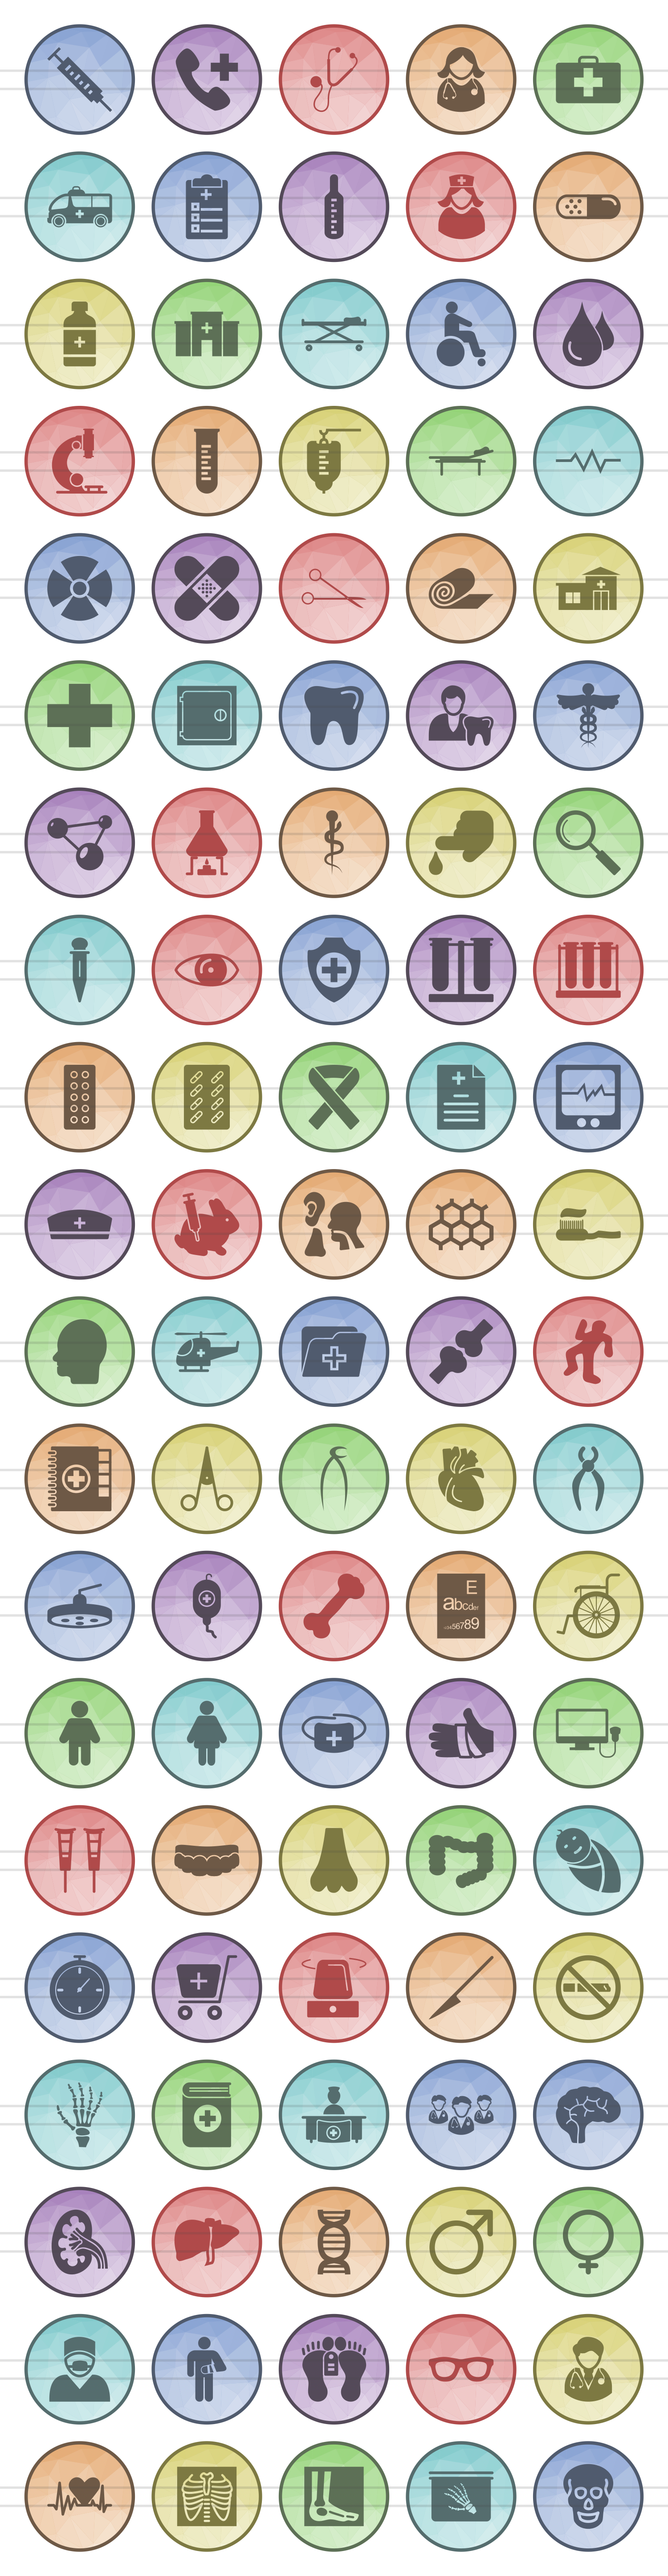 100 Medical General Filled Low Poly Icons example image 2